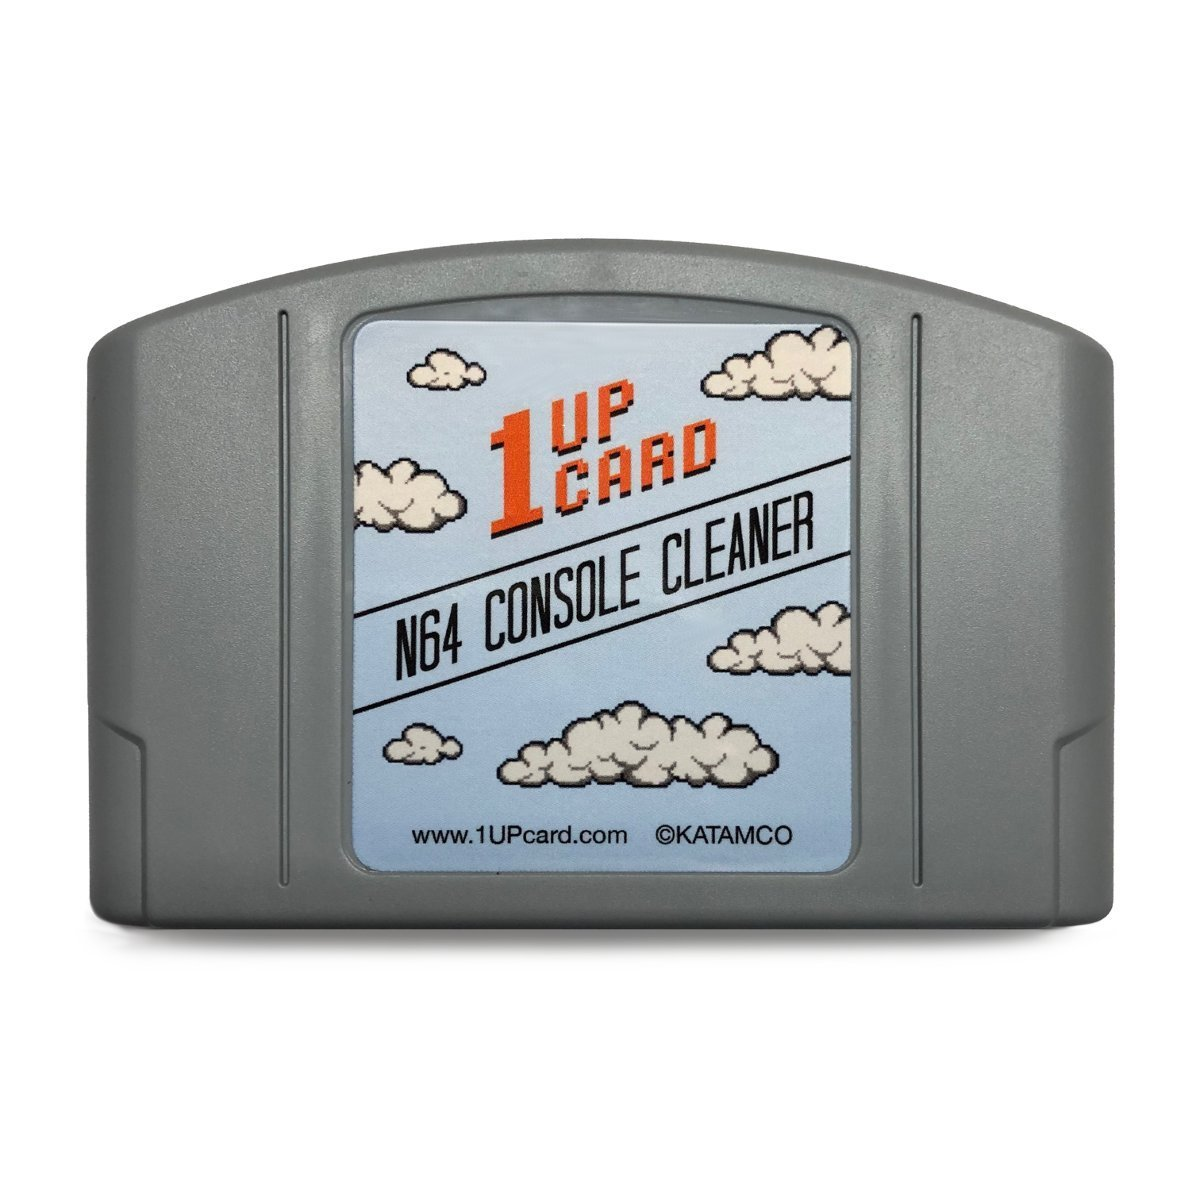 N64 console cleaner by 1UPcard - Nintendo 64